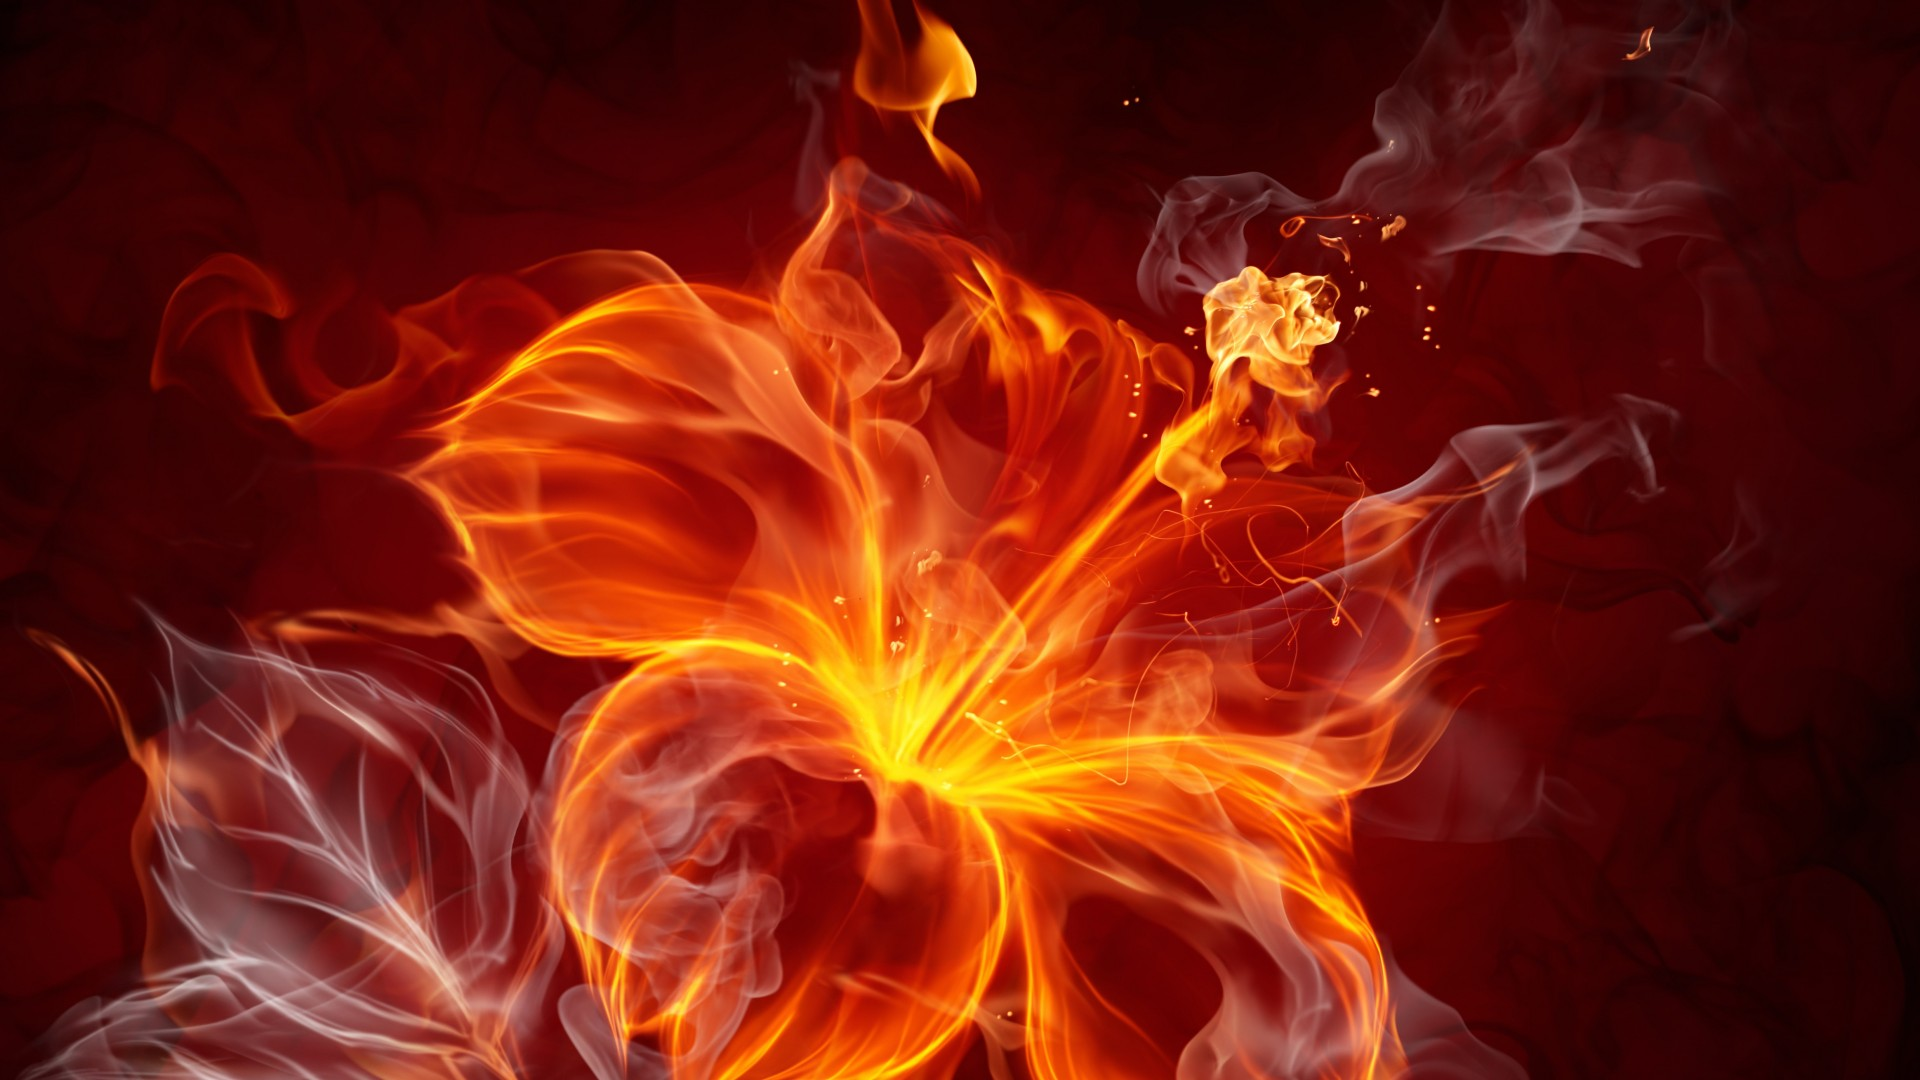 flaming fireplace wallpaper - photo #28